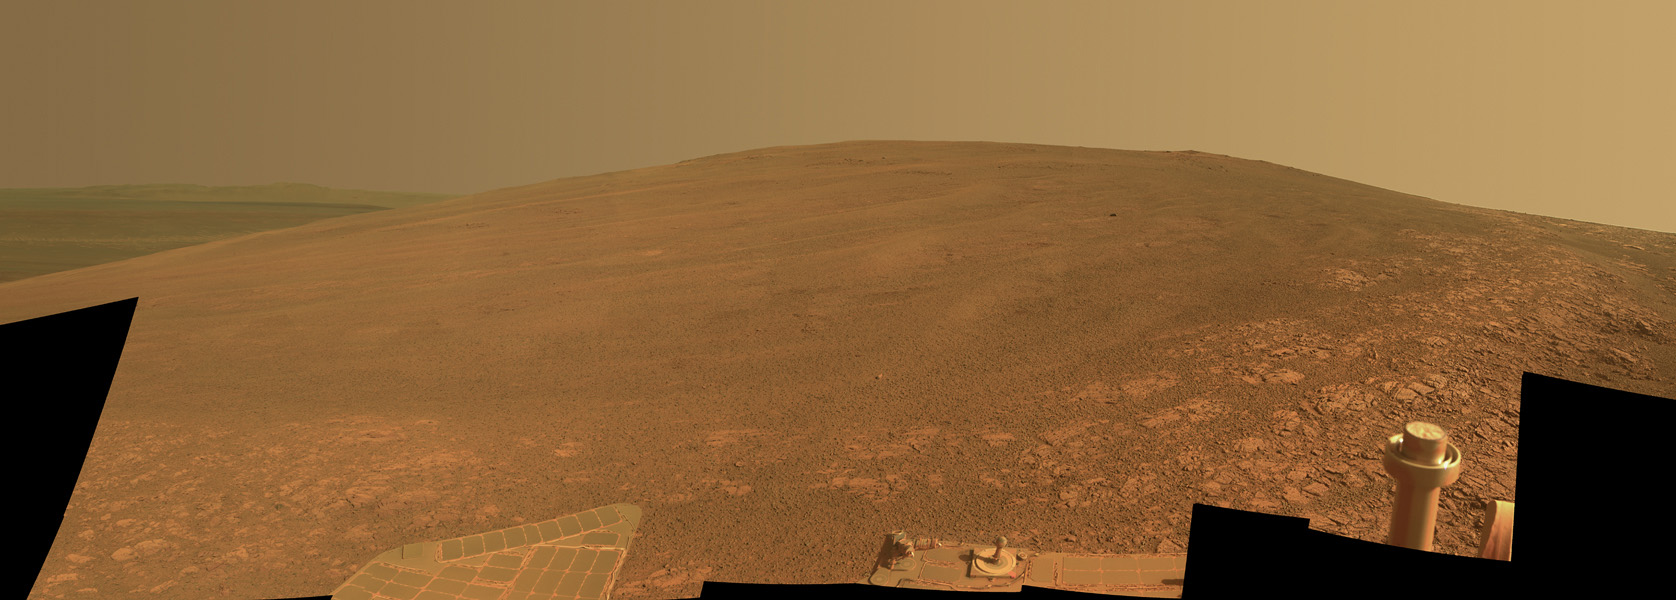 This scene shows the 'Murray Ridge' portion of the western rim of Endeavour Crater on Mars as seen by NASA's rover Opportunity; this feature is called Murray Ridge in tribute to Bruce Murray (1931-2013), an influential advocate for planetary exploration.